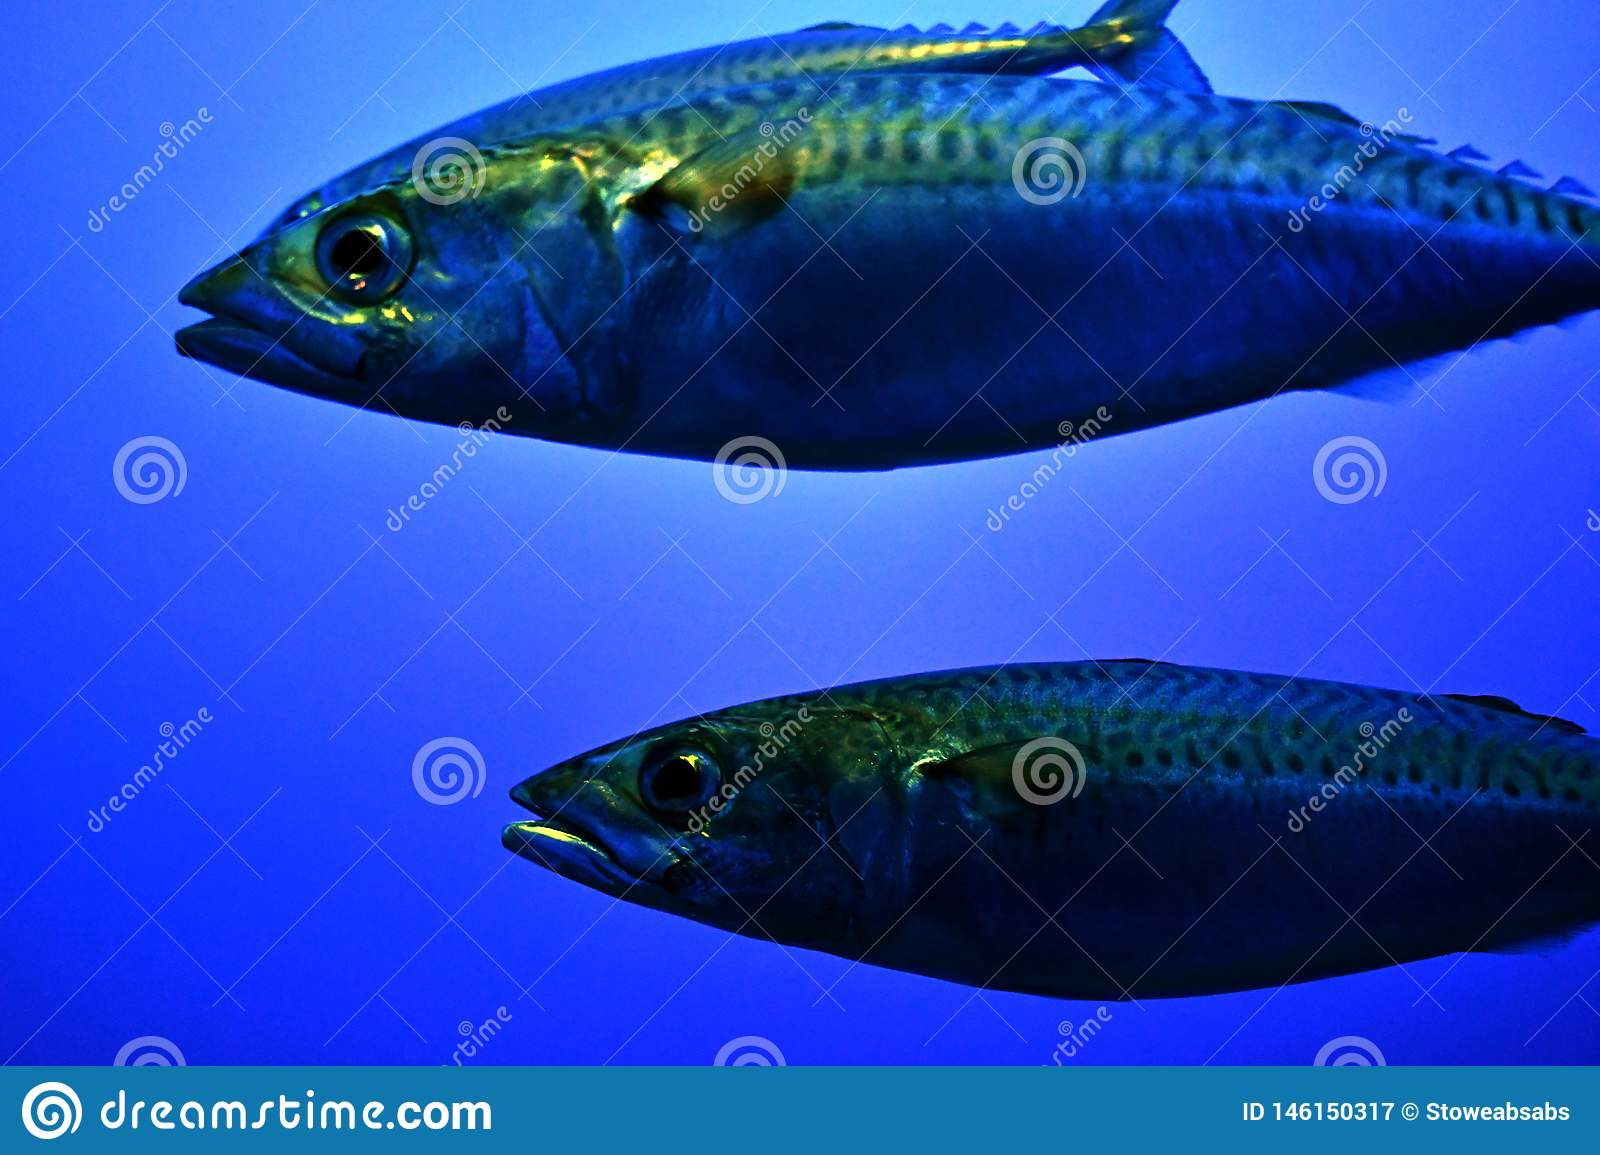 Two big fish in the ocean